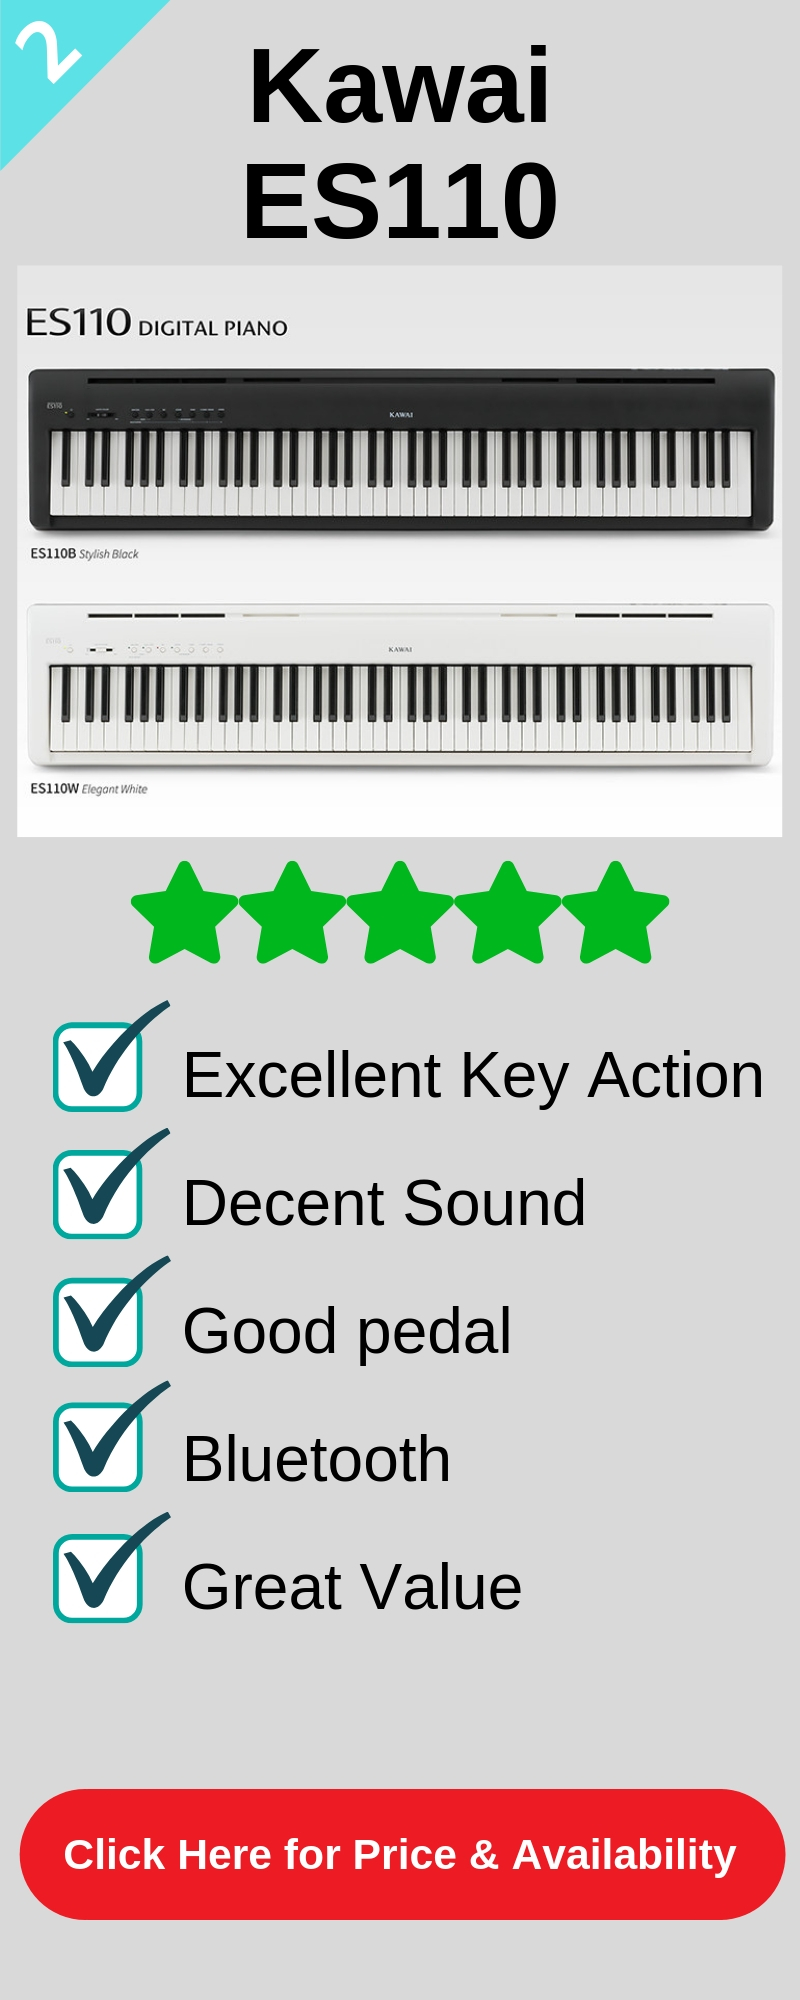 The second best digital piano under $1,000 is the Kawai ES110